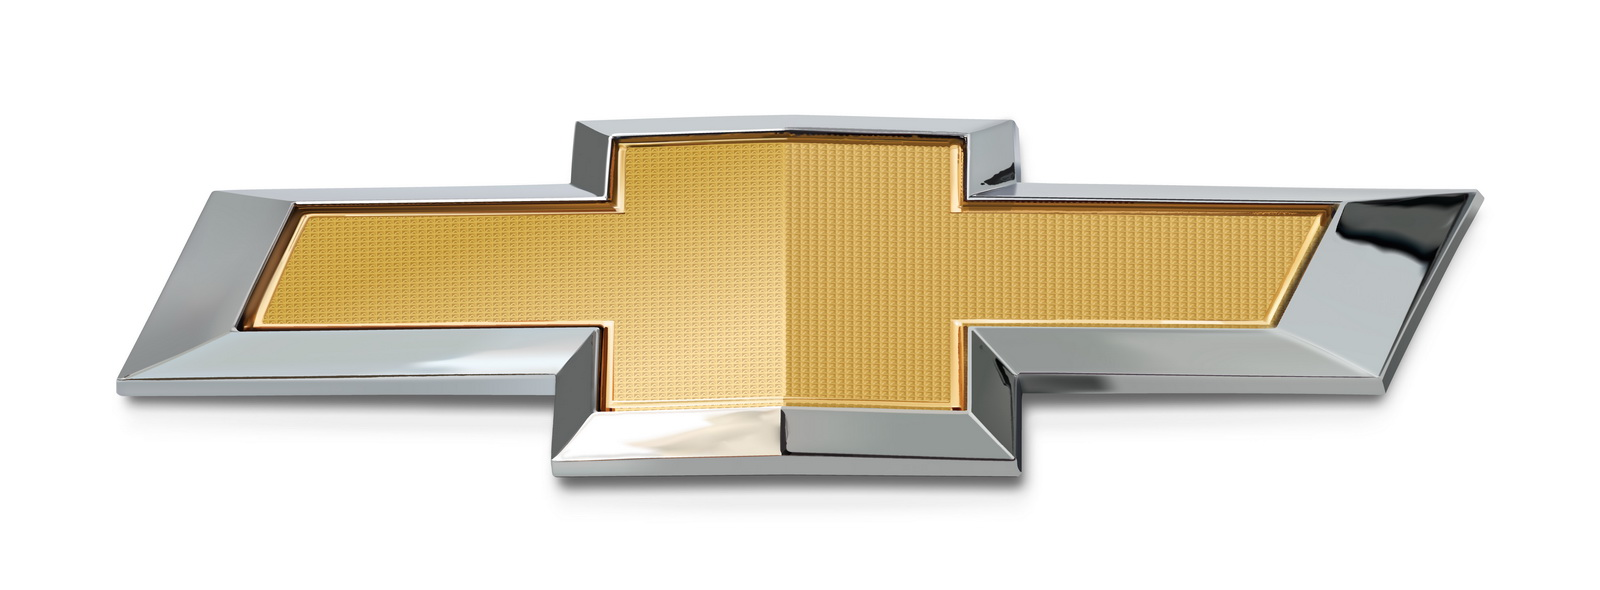 The current Chevrolet global bowtie appears on all Chevrolet cars, trucks and crossovers produced and marketed in more than 140 countries.